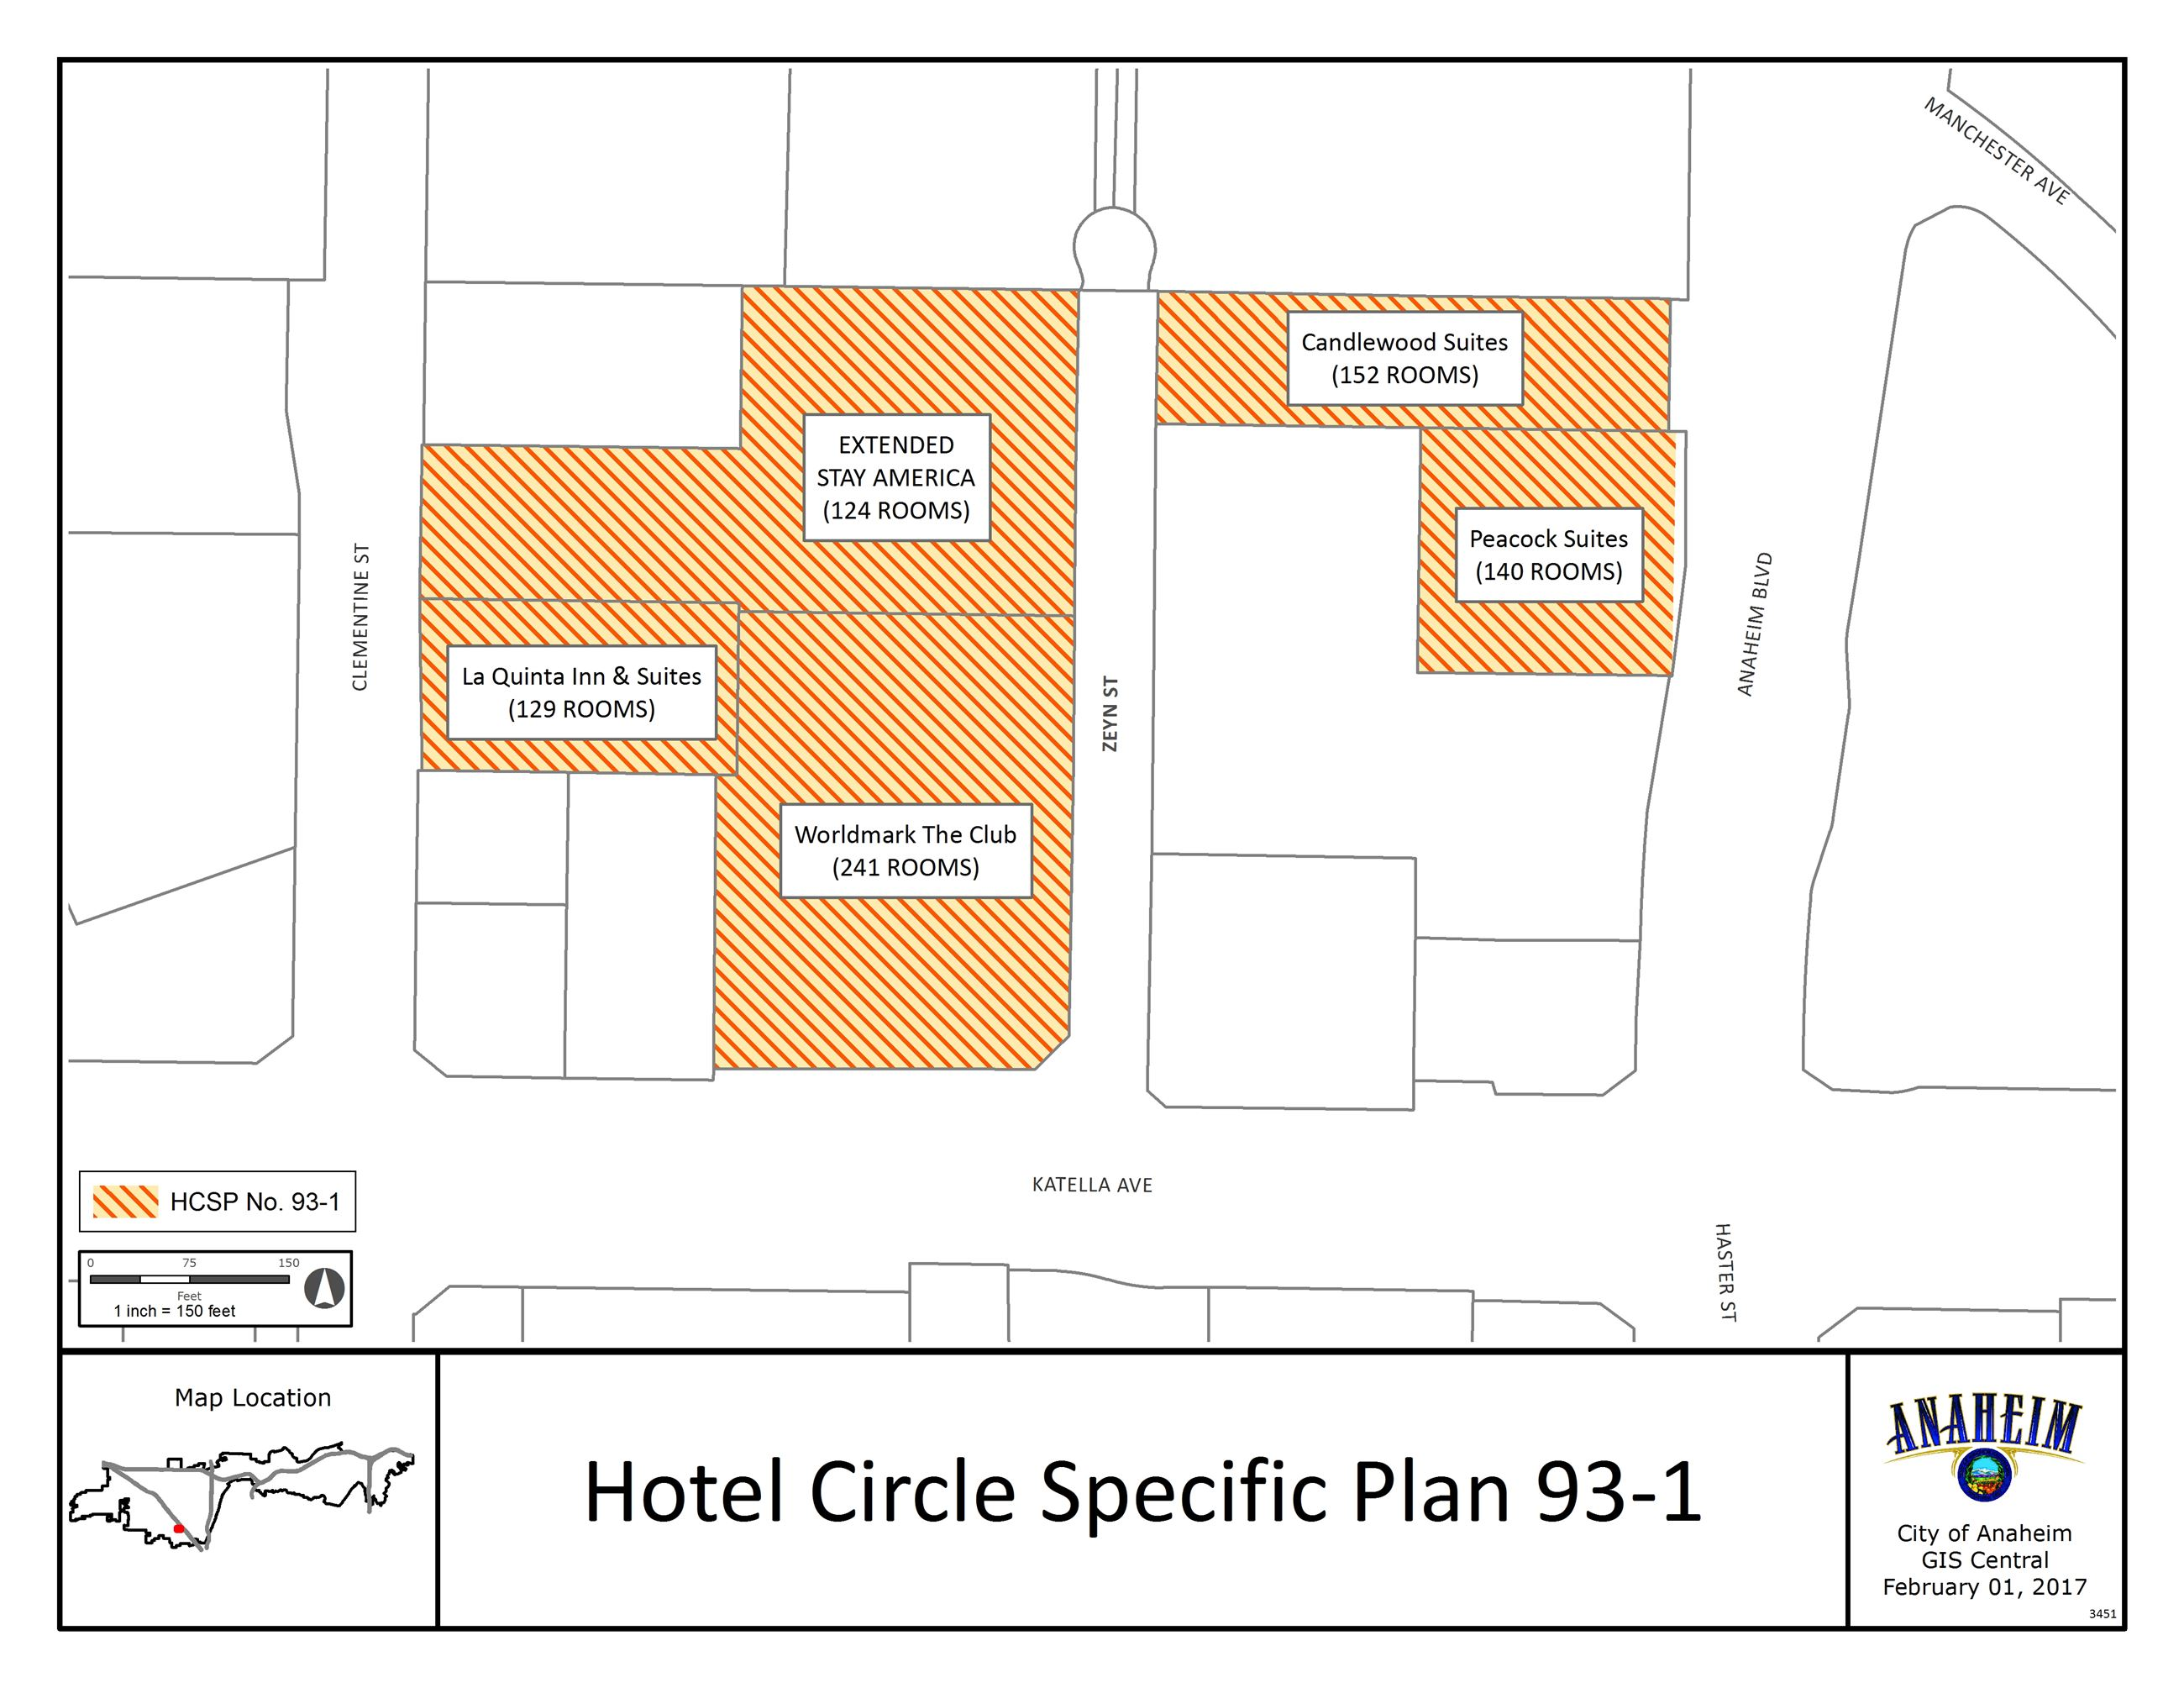 Hotel Circle Specific Plan 93-1 Map Image